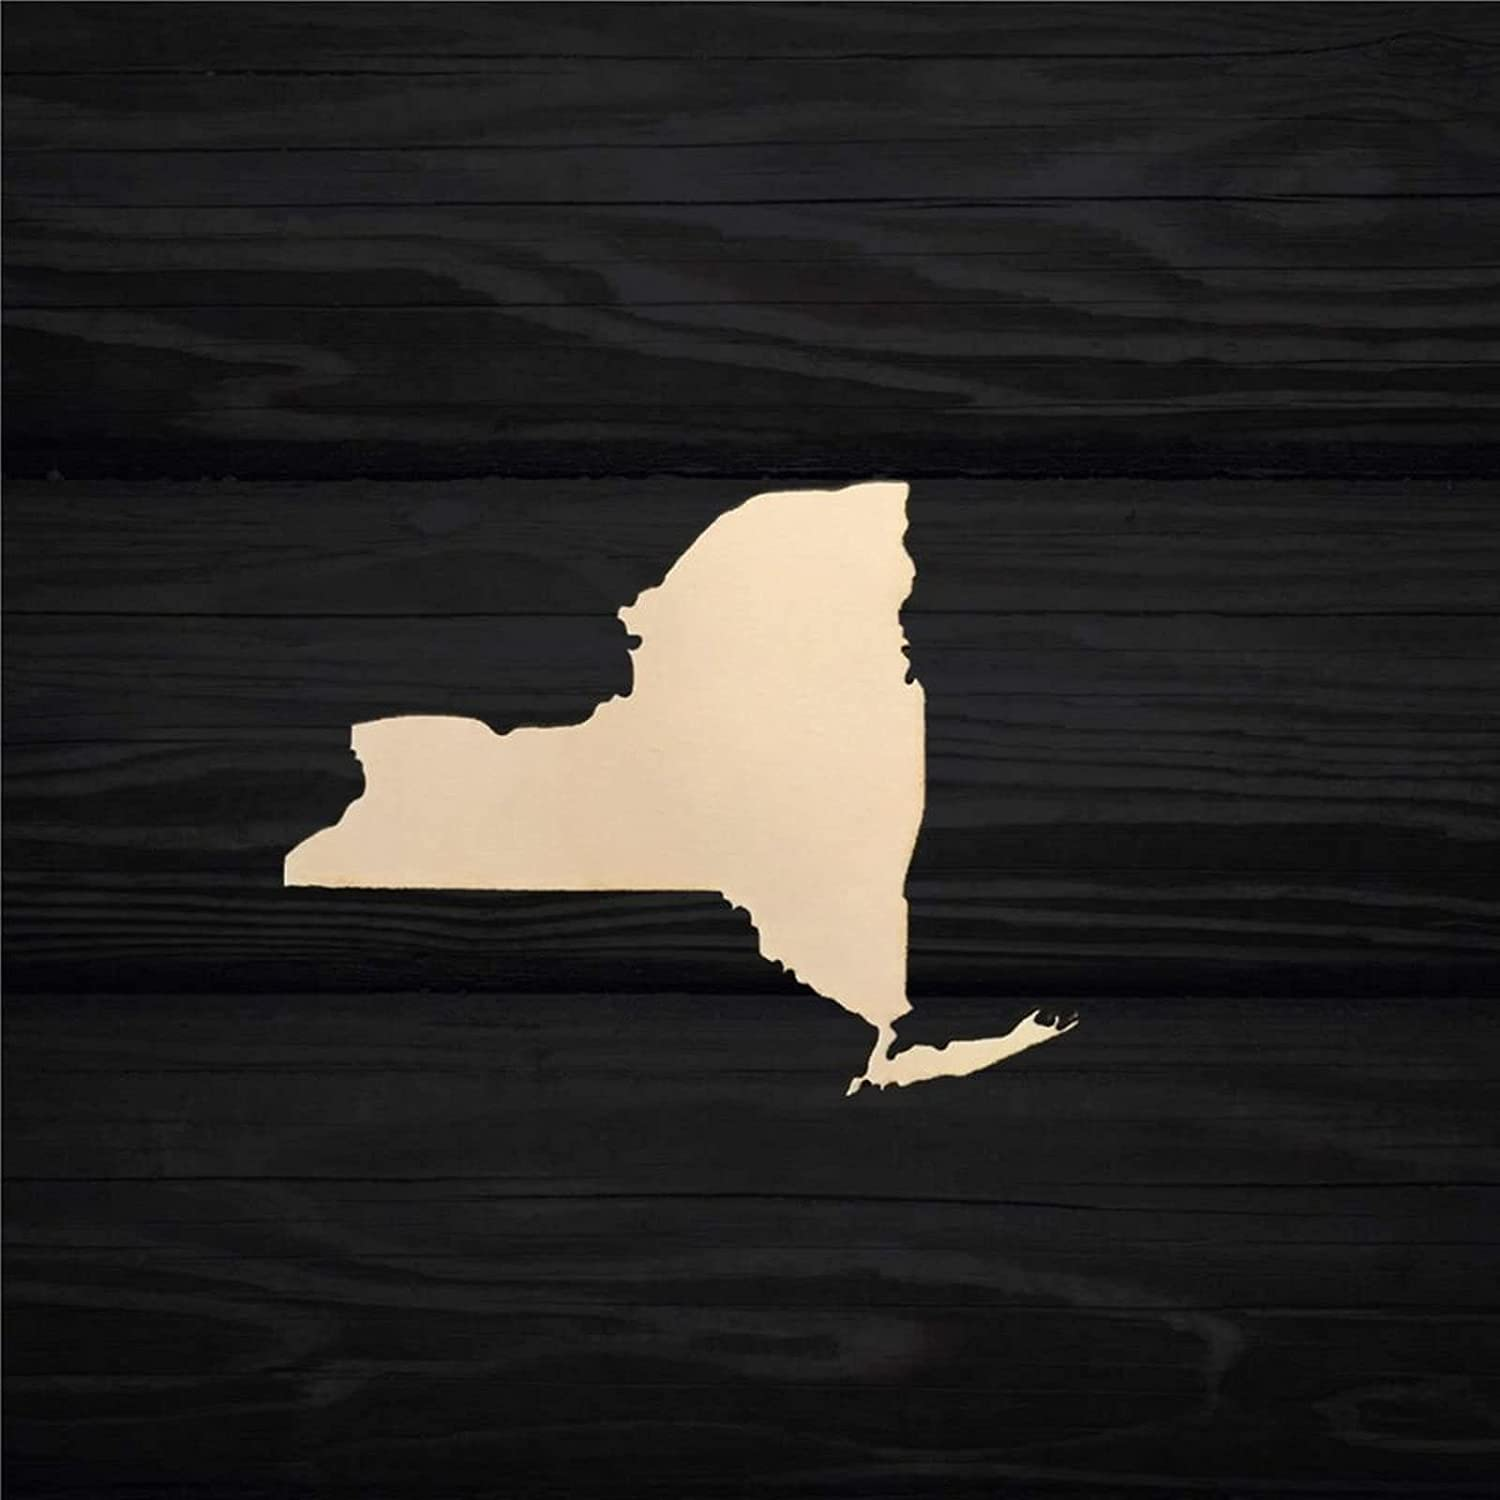 ArogGeld New York State Map Silhouette Wood Craft,Unfinished Wooden Cutout Art,Inspirational Farmhouse Wall Plaque,Rustic Home Decor for Living Room,Nursery,Bedroom,Porch,Gallery Wall